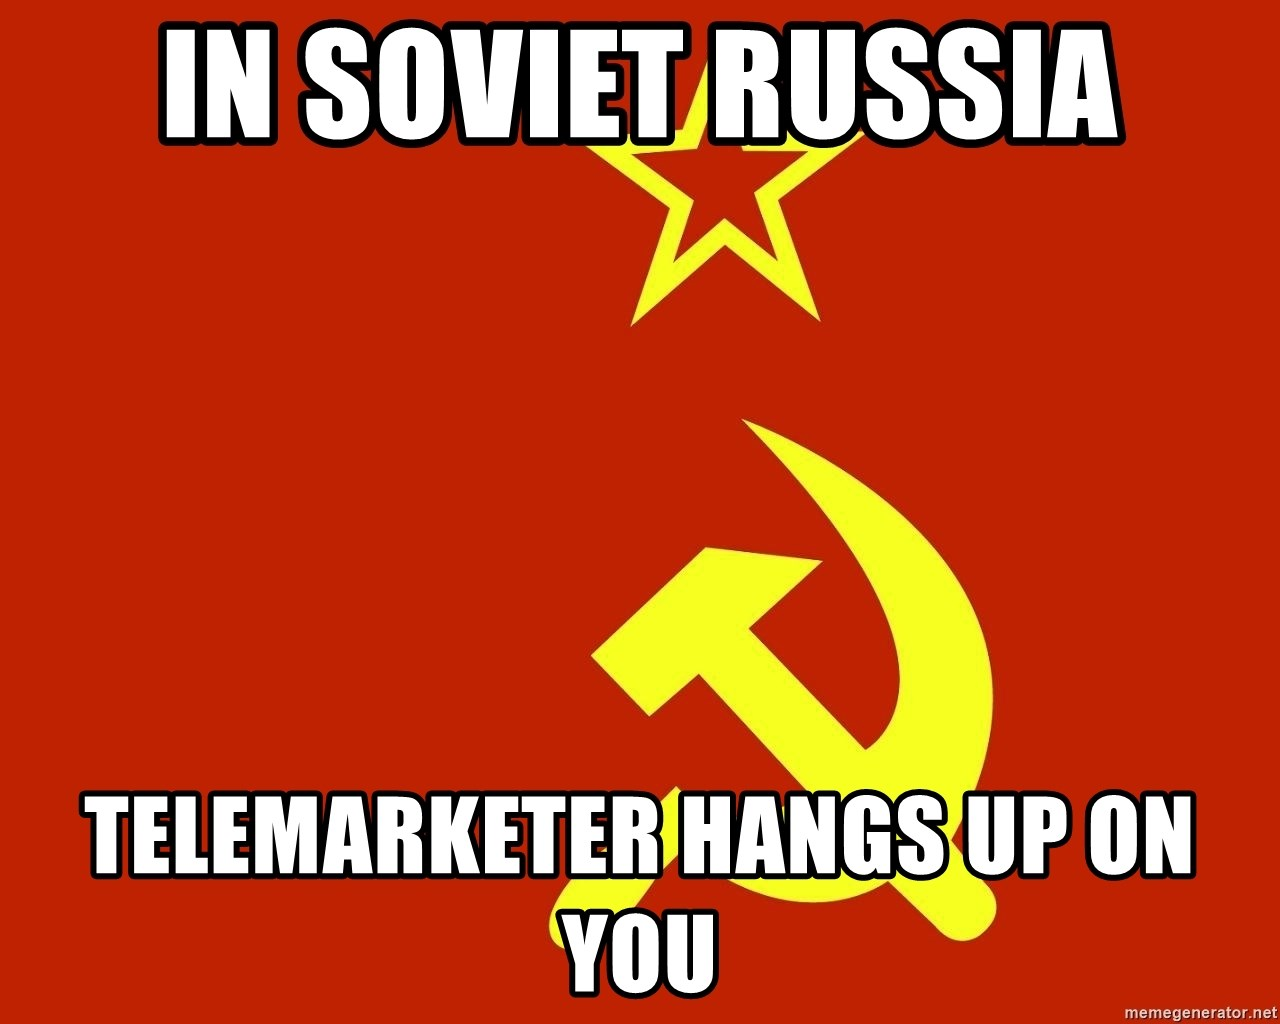 In Soviet Russia - In Soviet Russia Telemarketer hangs up on you